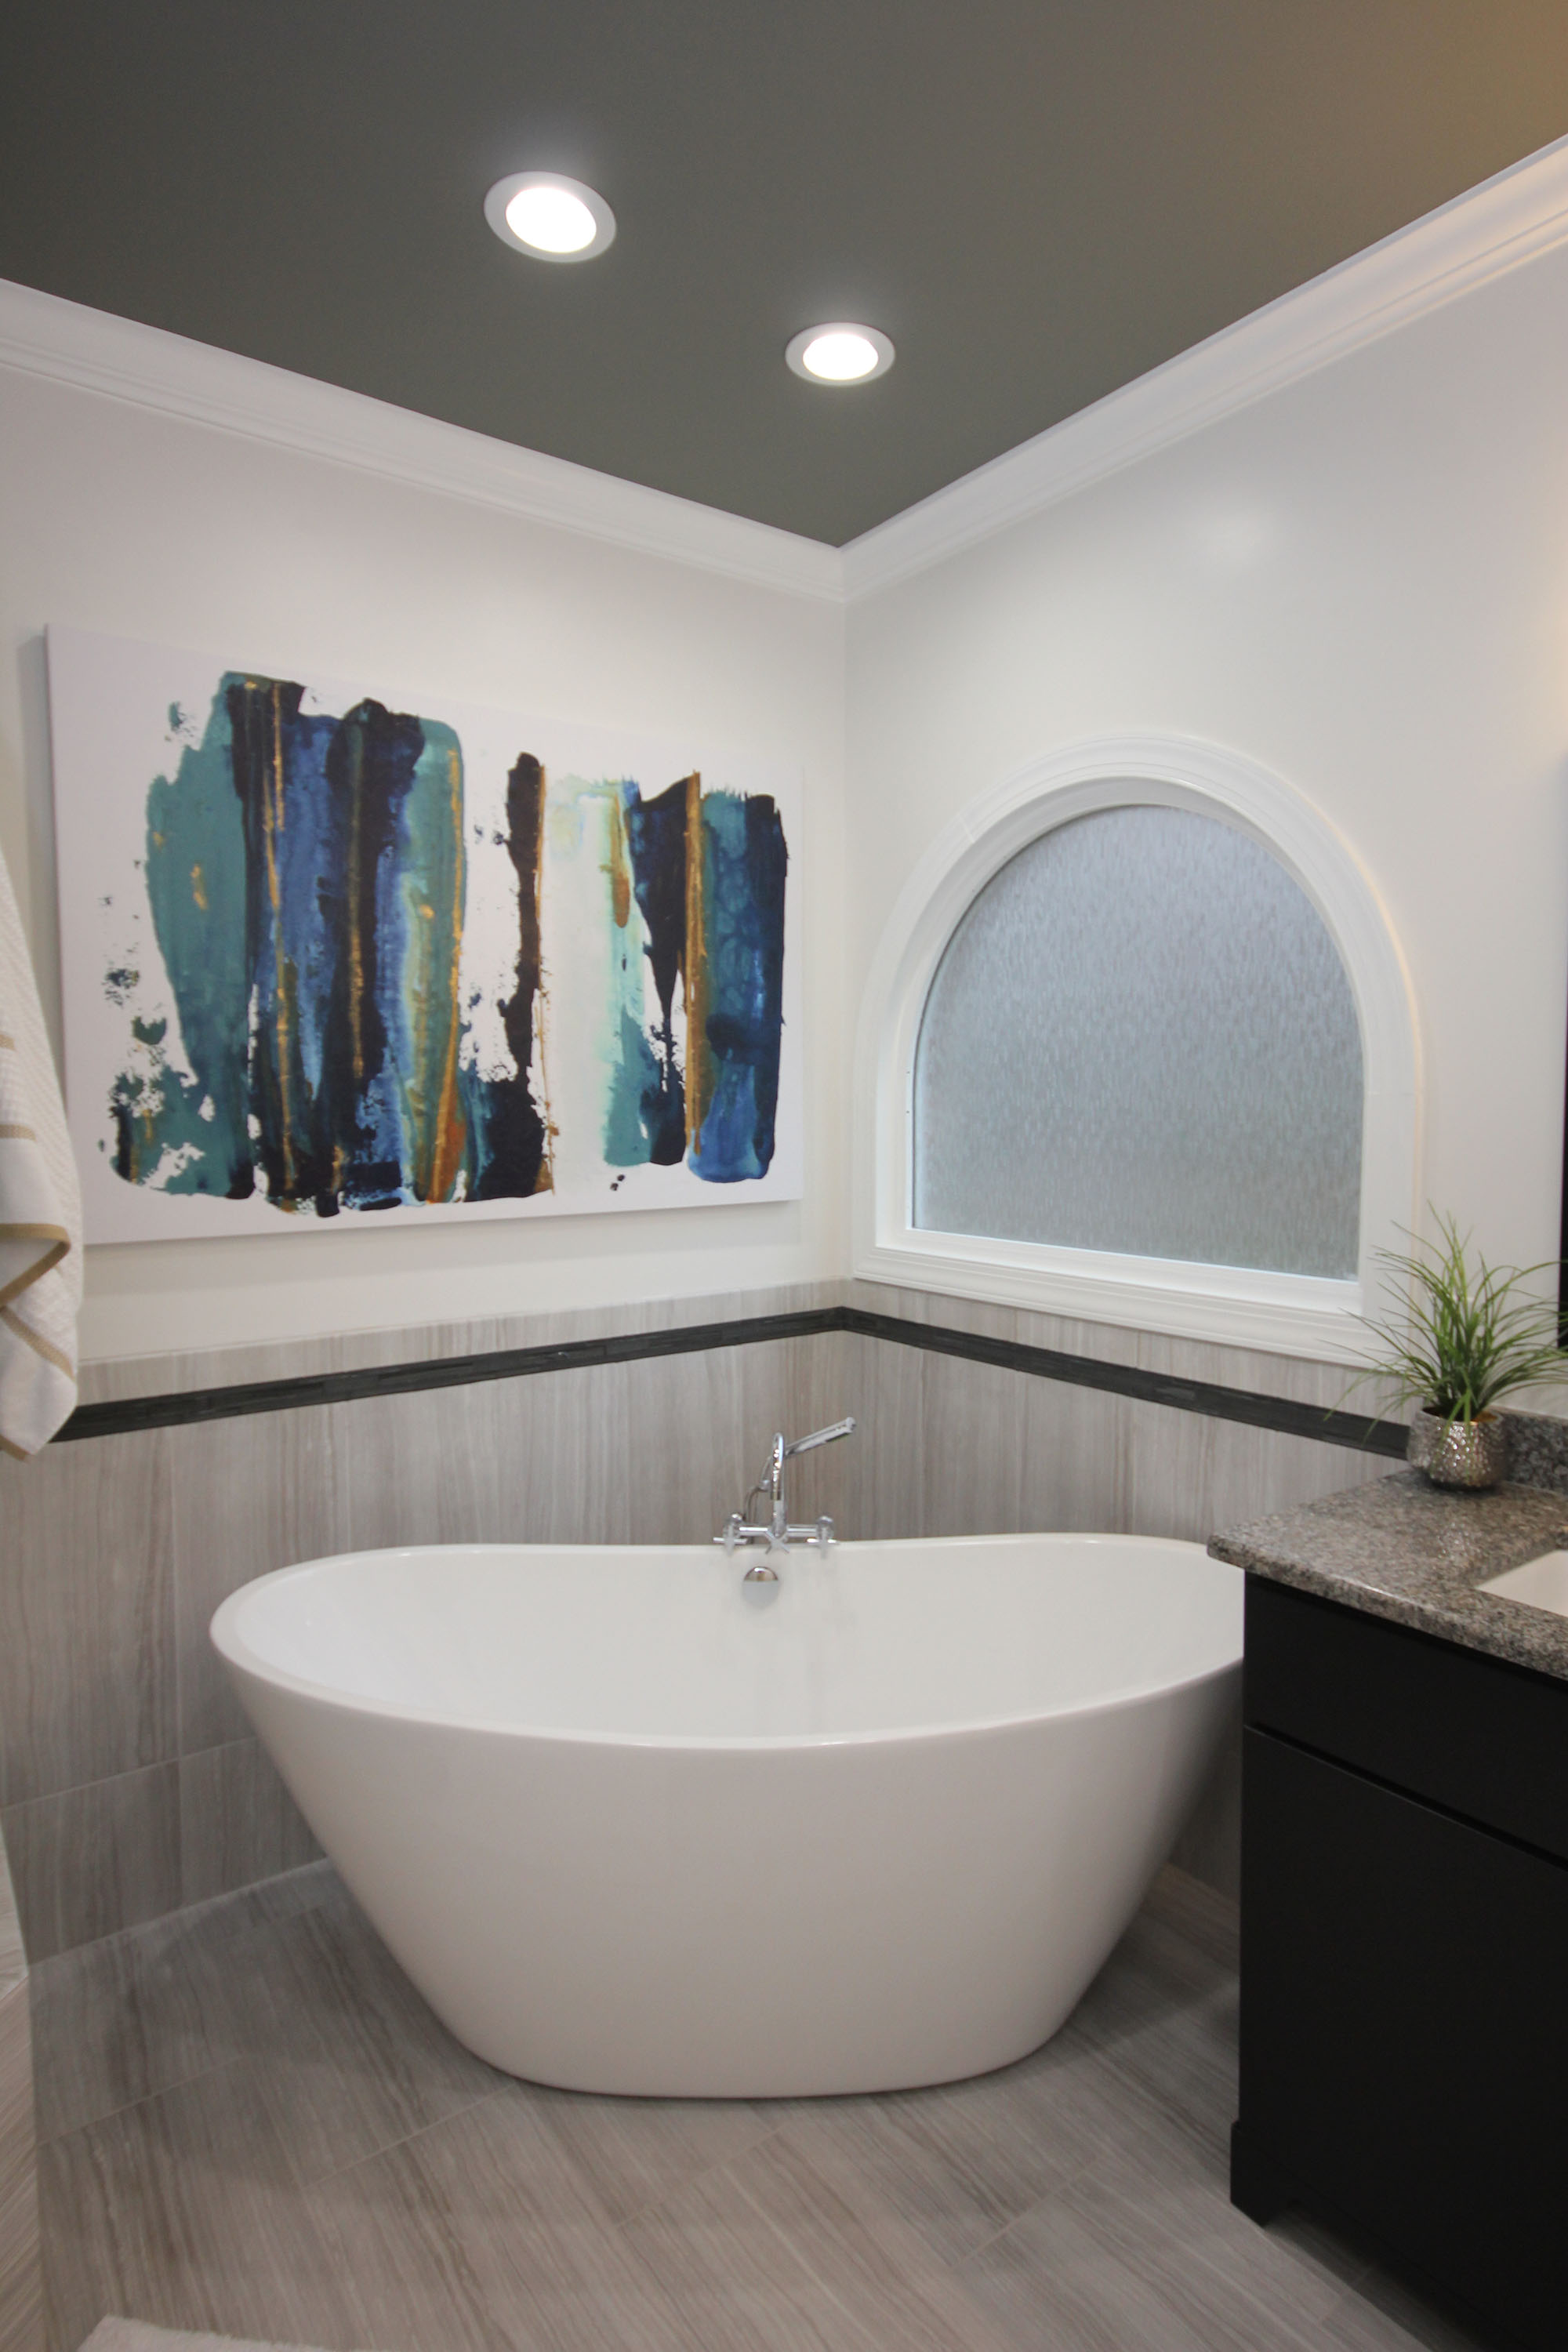 Bathroom Remodel Cost Raleigh freestanding bathtubscary bathroom remodeling -portofino tile